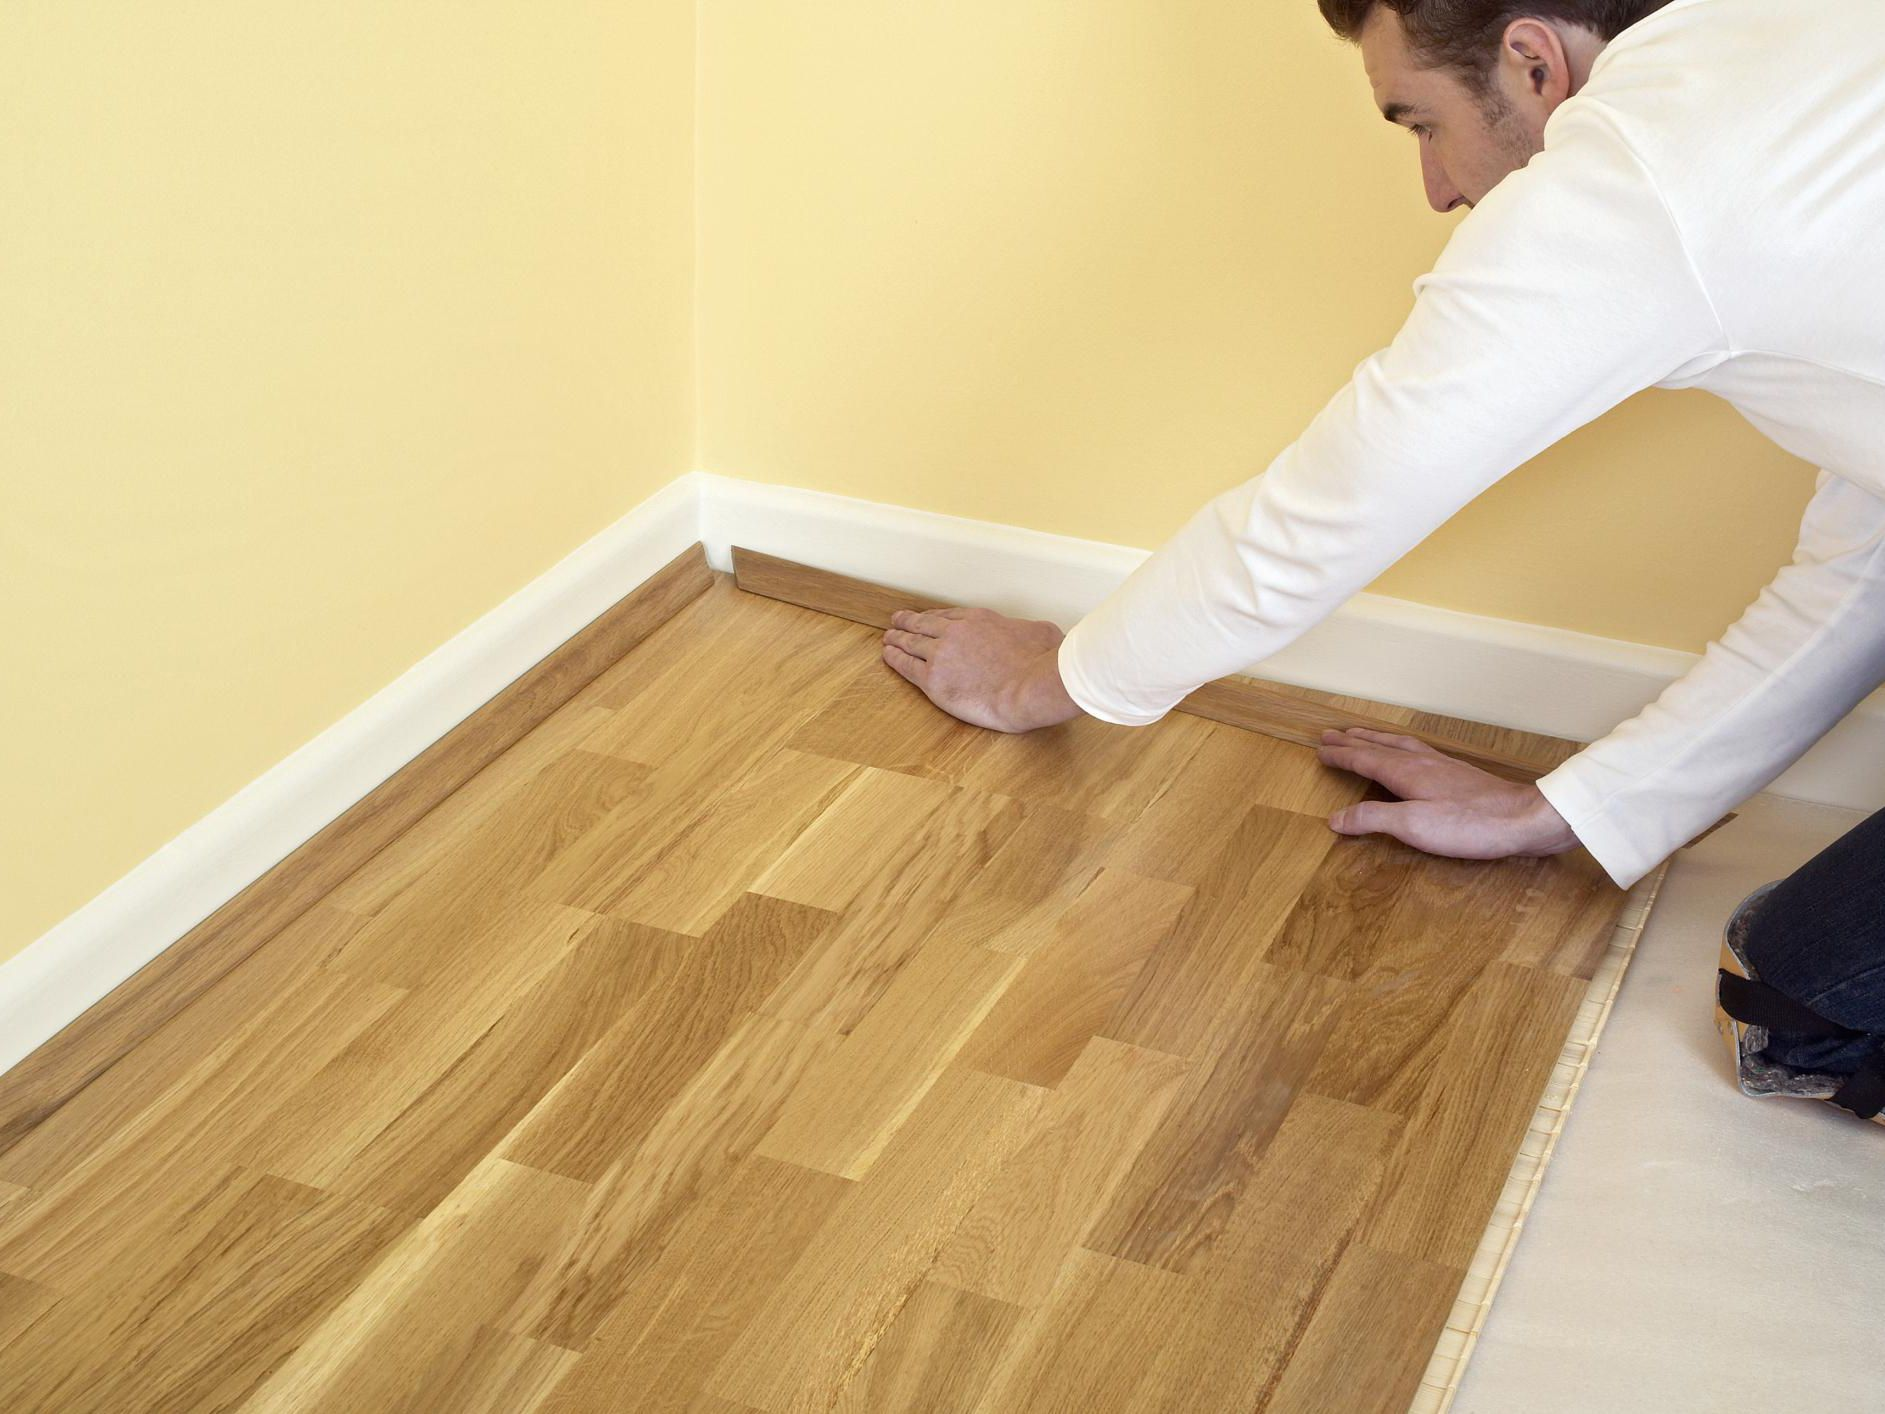 Basics Of 12 Mm Laminate Flooring, What Is Best Thickness For Laminate Flooring